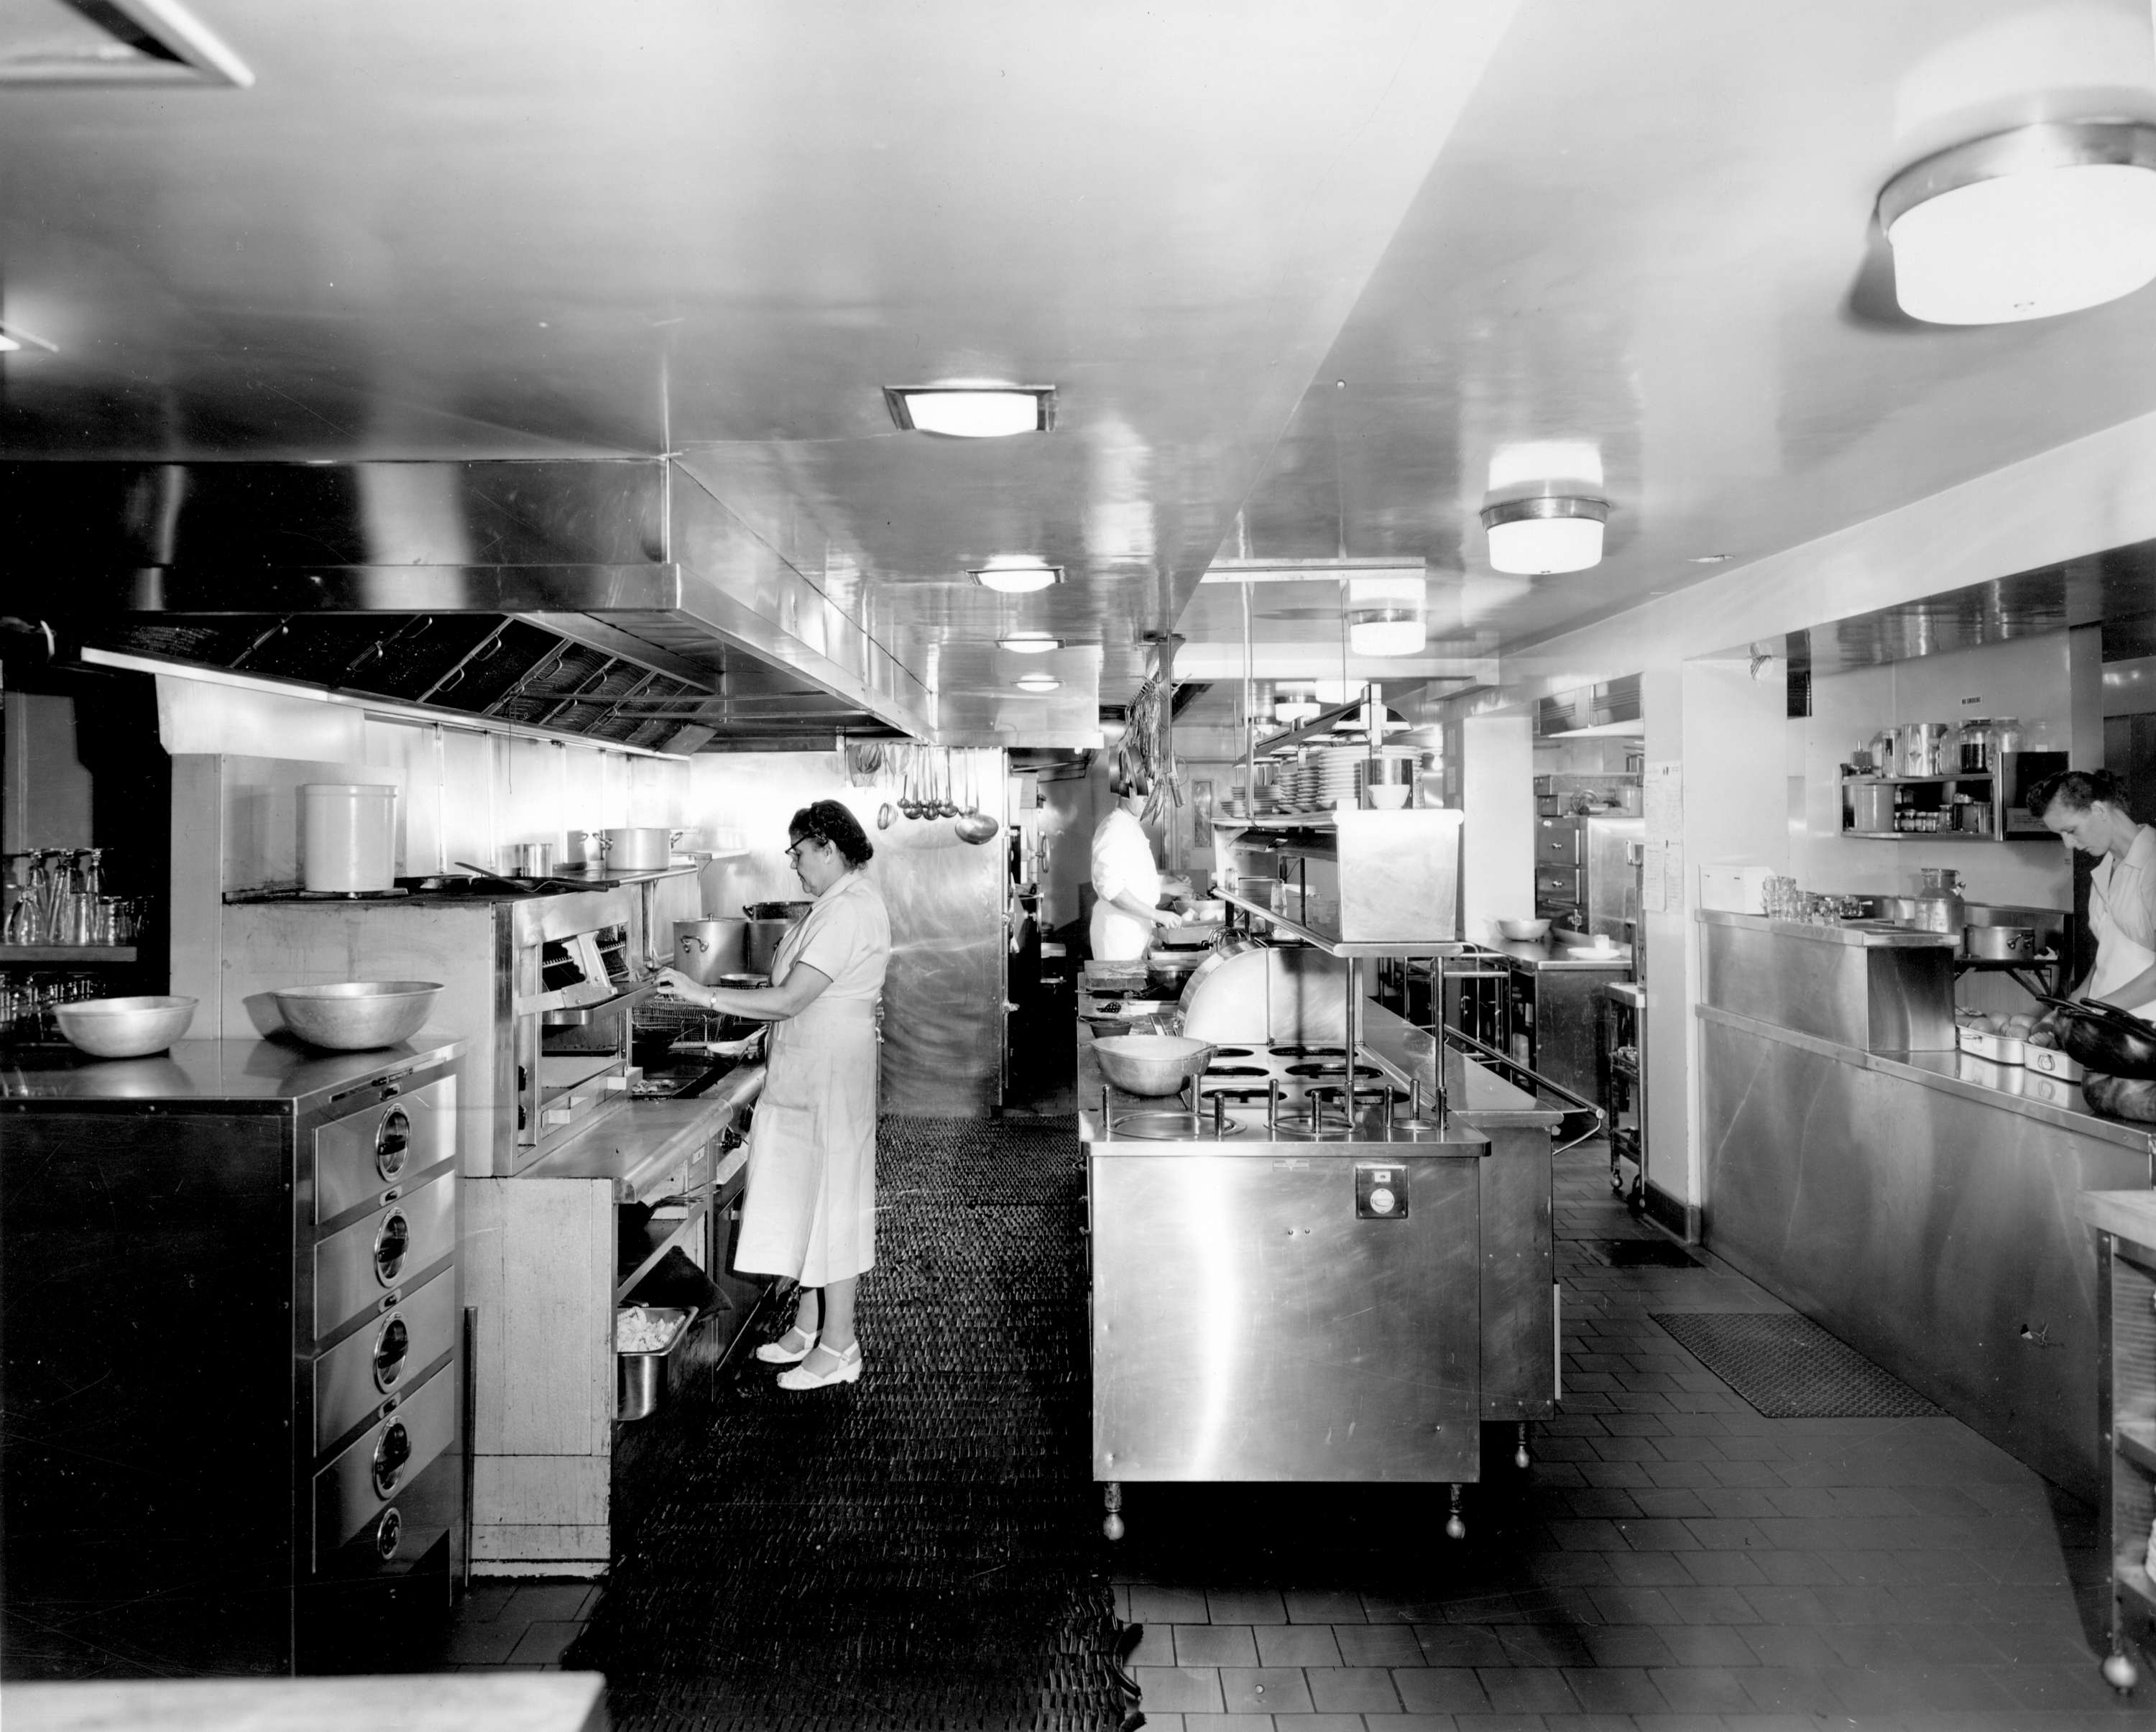 Waldorf Hotel kitchen - basement level] - City of Vancouver Archives